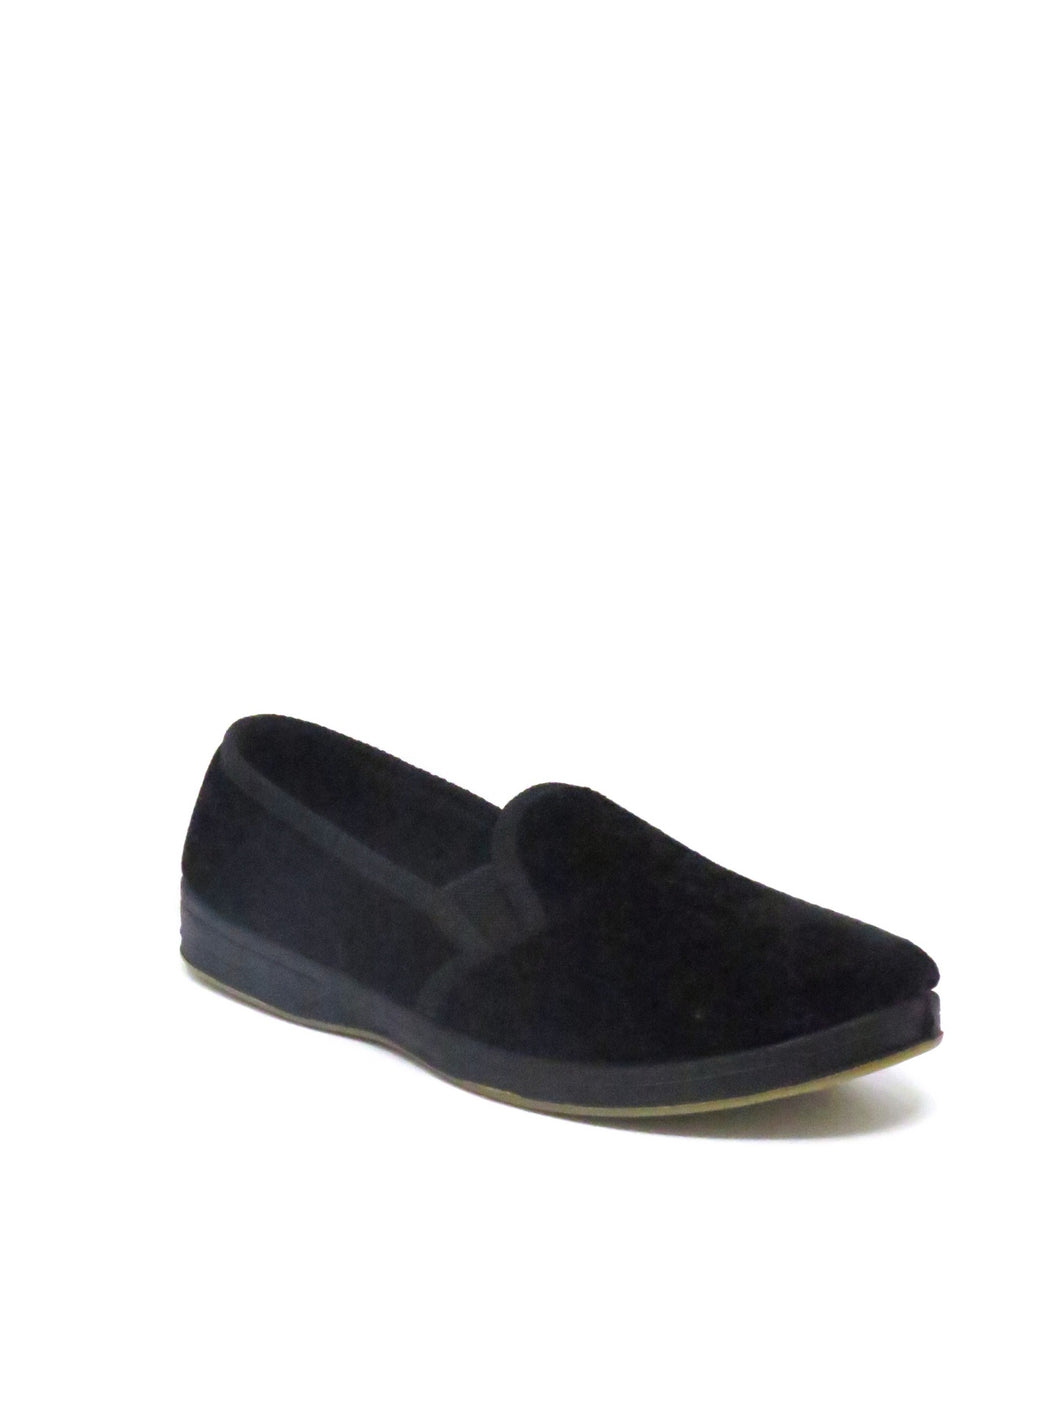 Foamtread | Debbie | Black